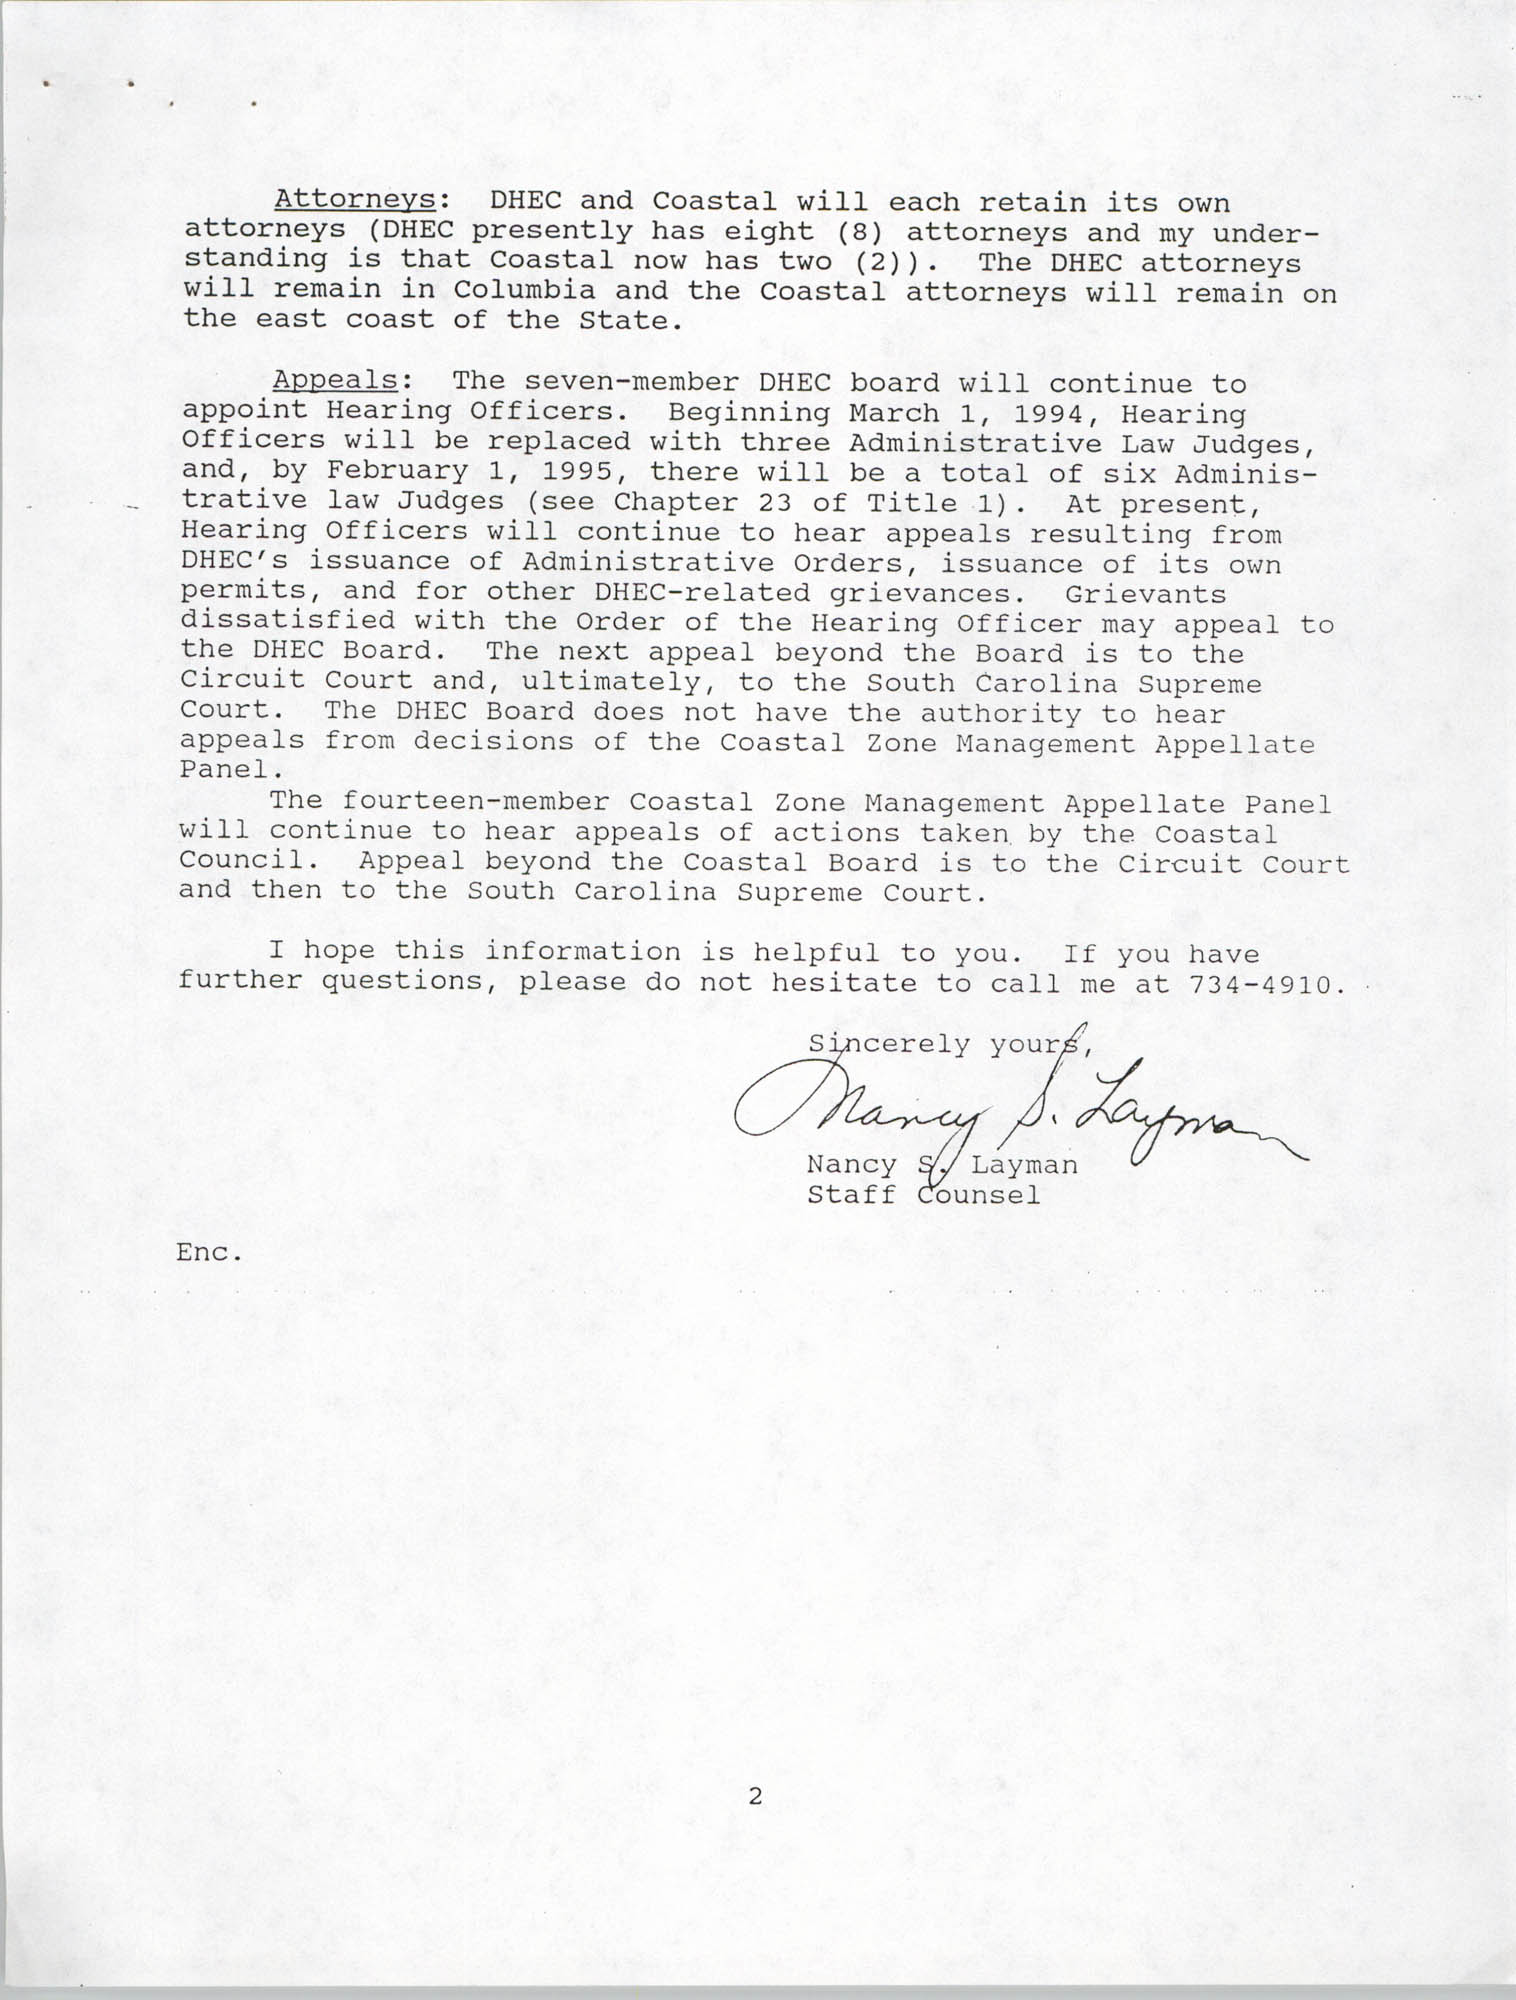 Letter from Nancy S. Layman to Andrea Loney, September 19, 1993, Page 2